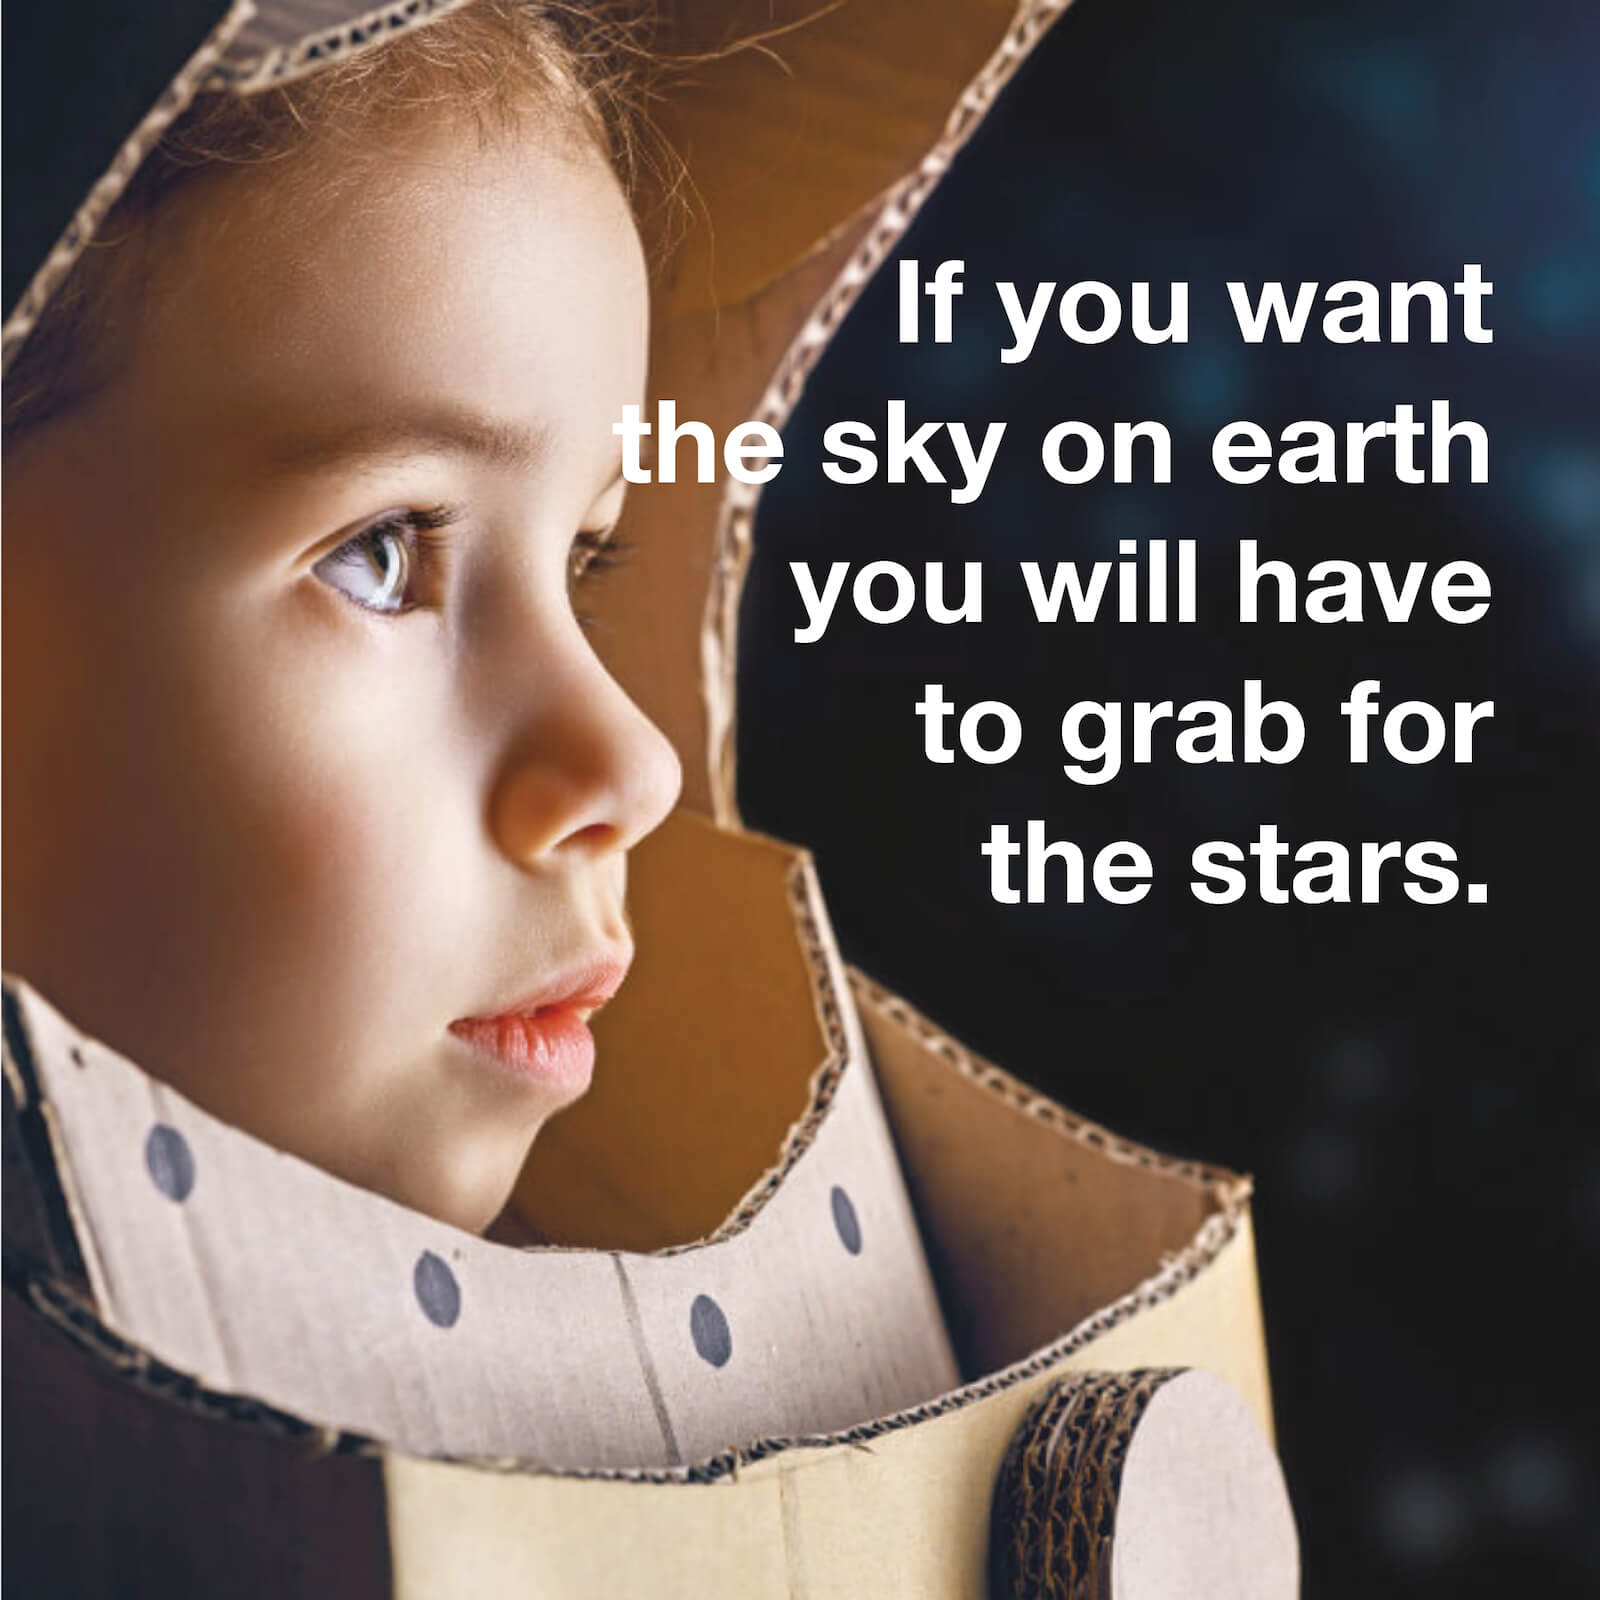 Get the stars in the sky. Grab your luck as a nanny.